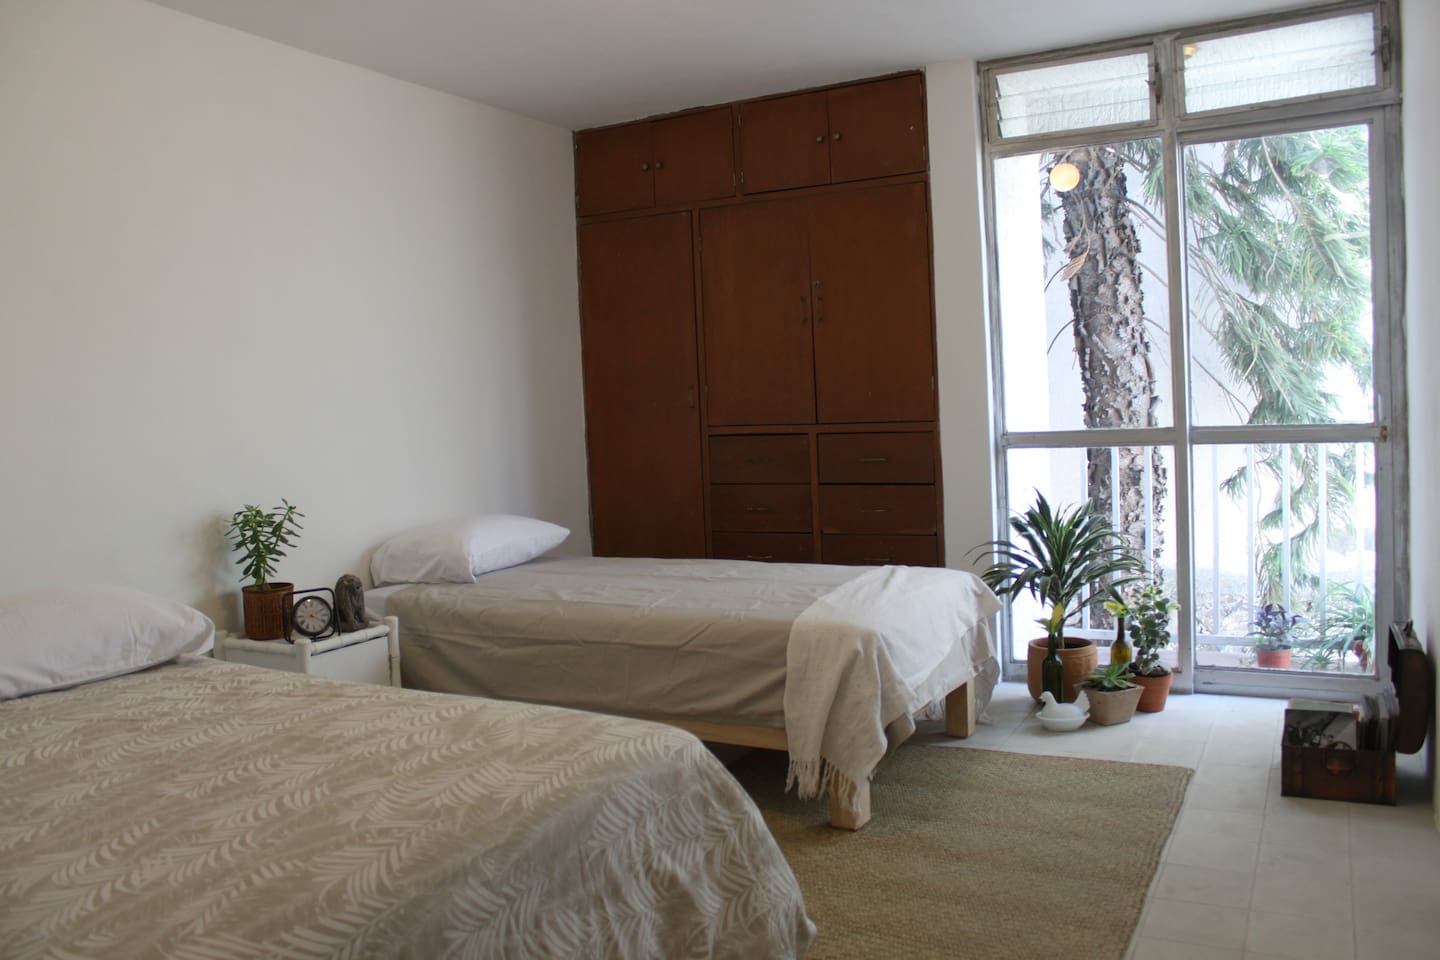 OBSIDIAN HOUSE - Guesthouse for Rent in Guadalajara, Jalisco, Mexico